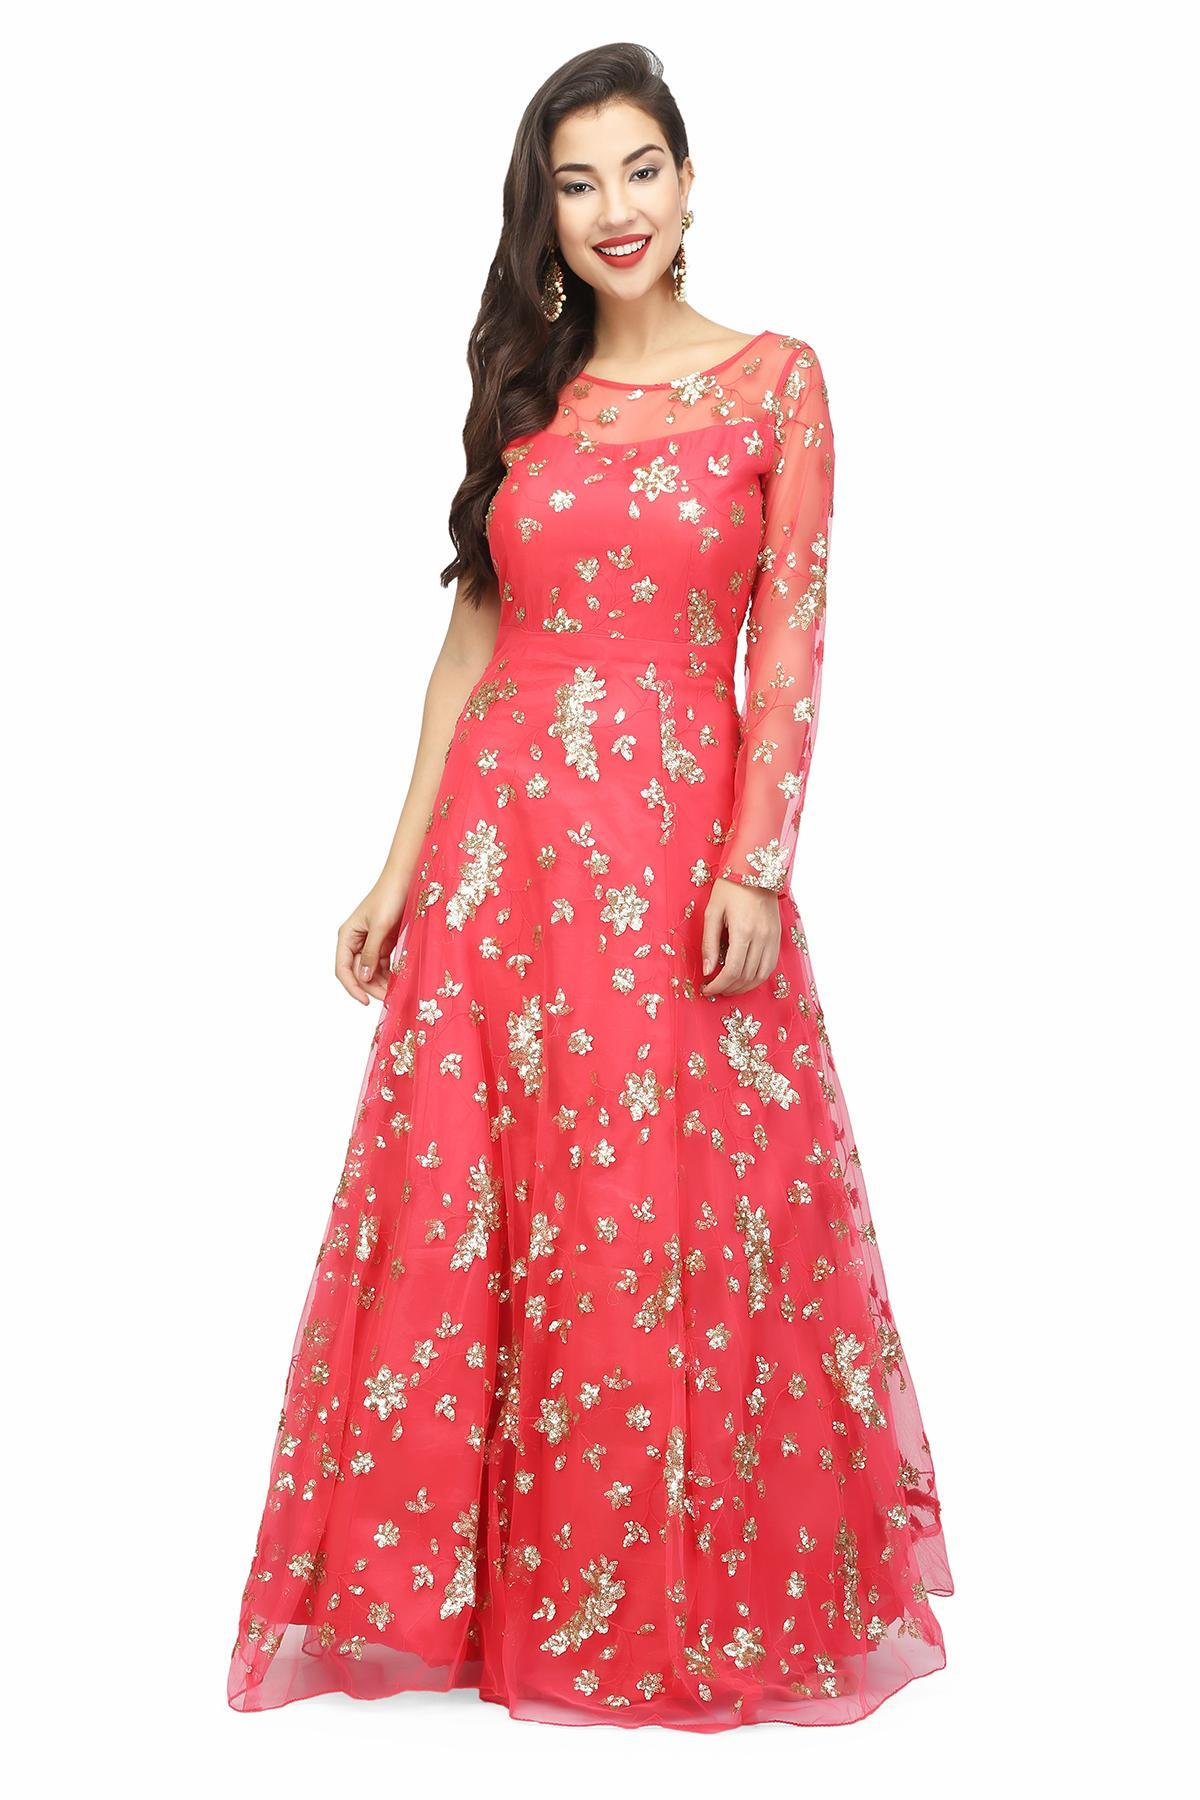 Tomato Red Embellished Red Gown by Aaina by Aditi for rent online ...